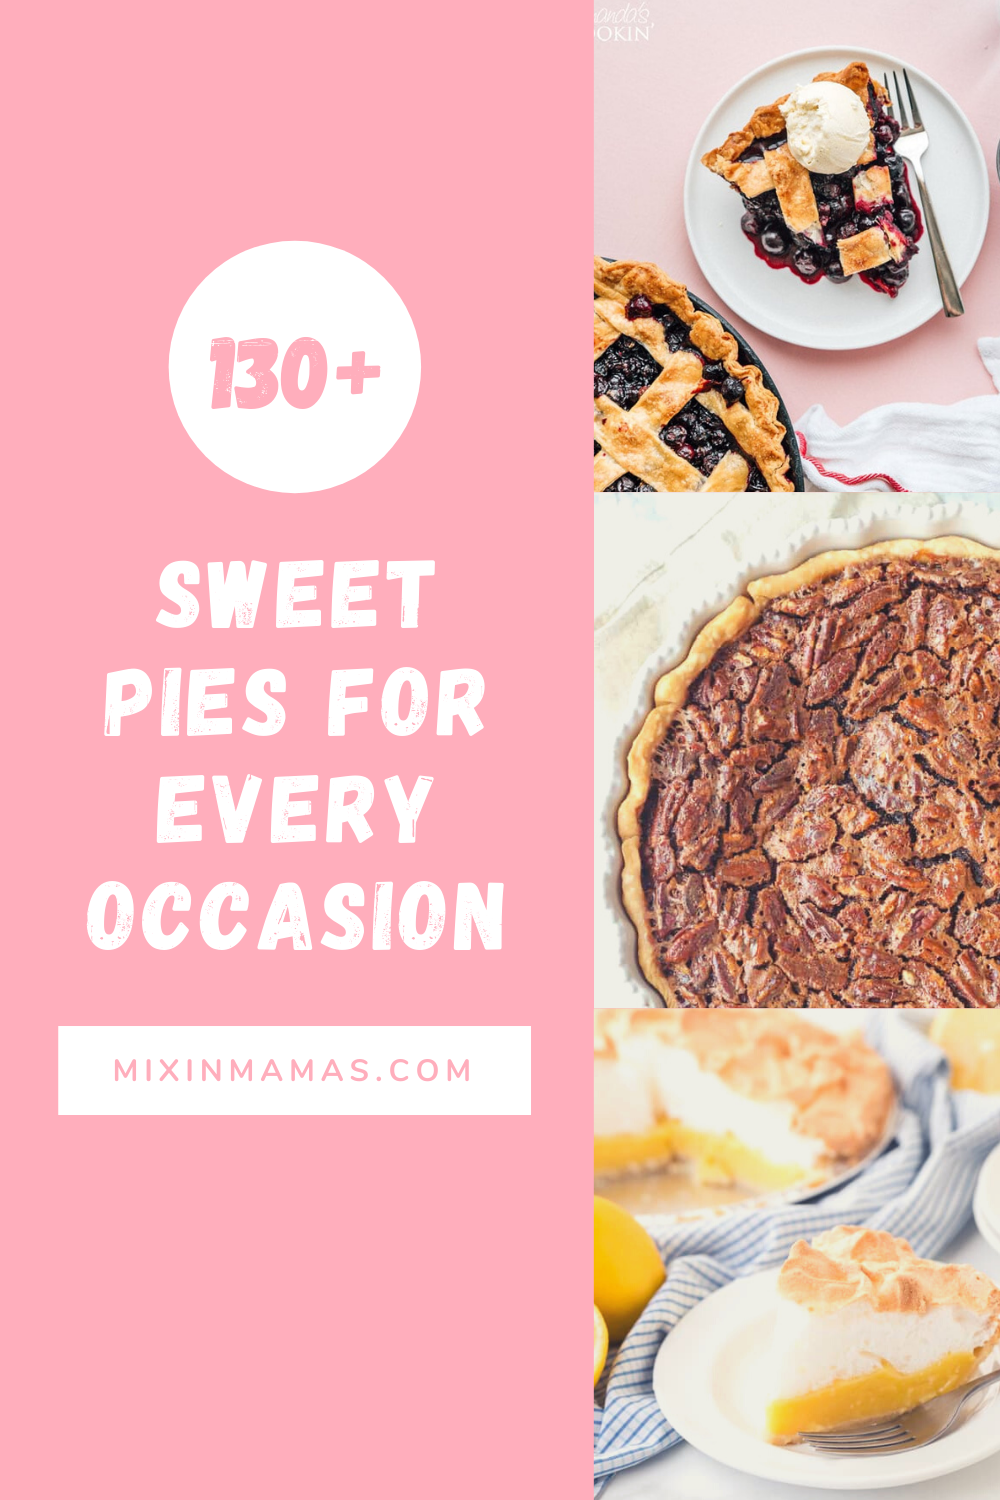 130+ sweet pie recipes for every occasion